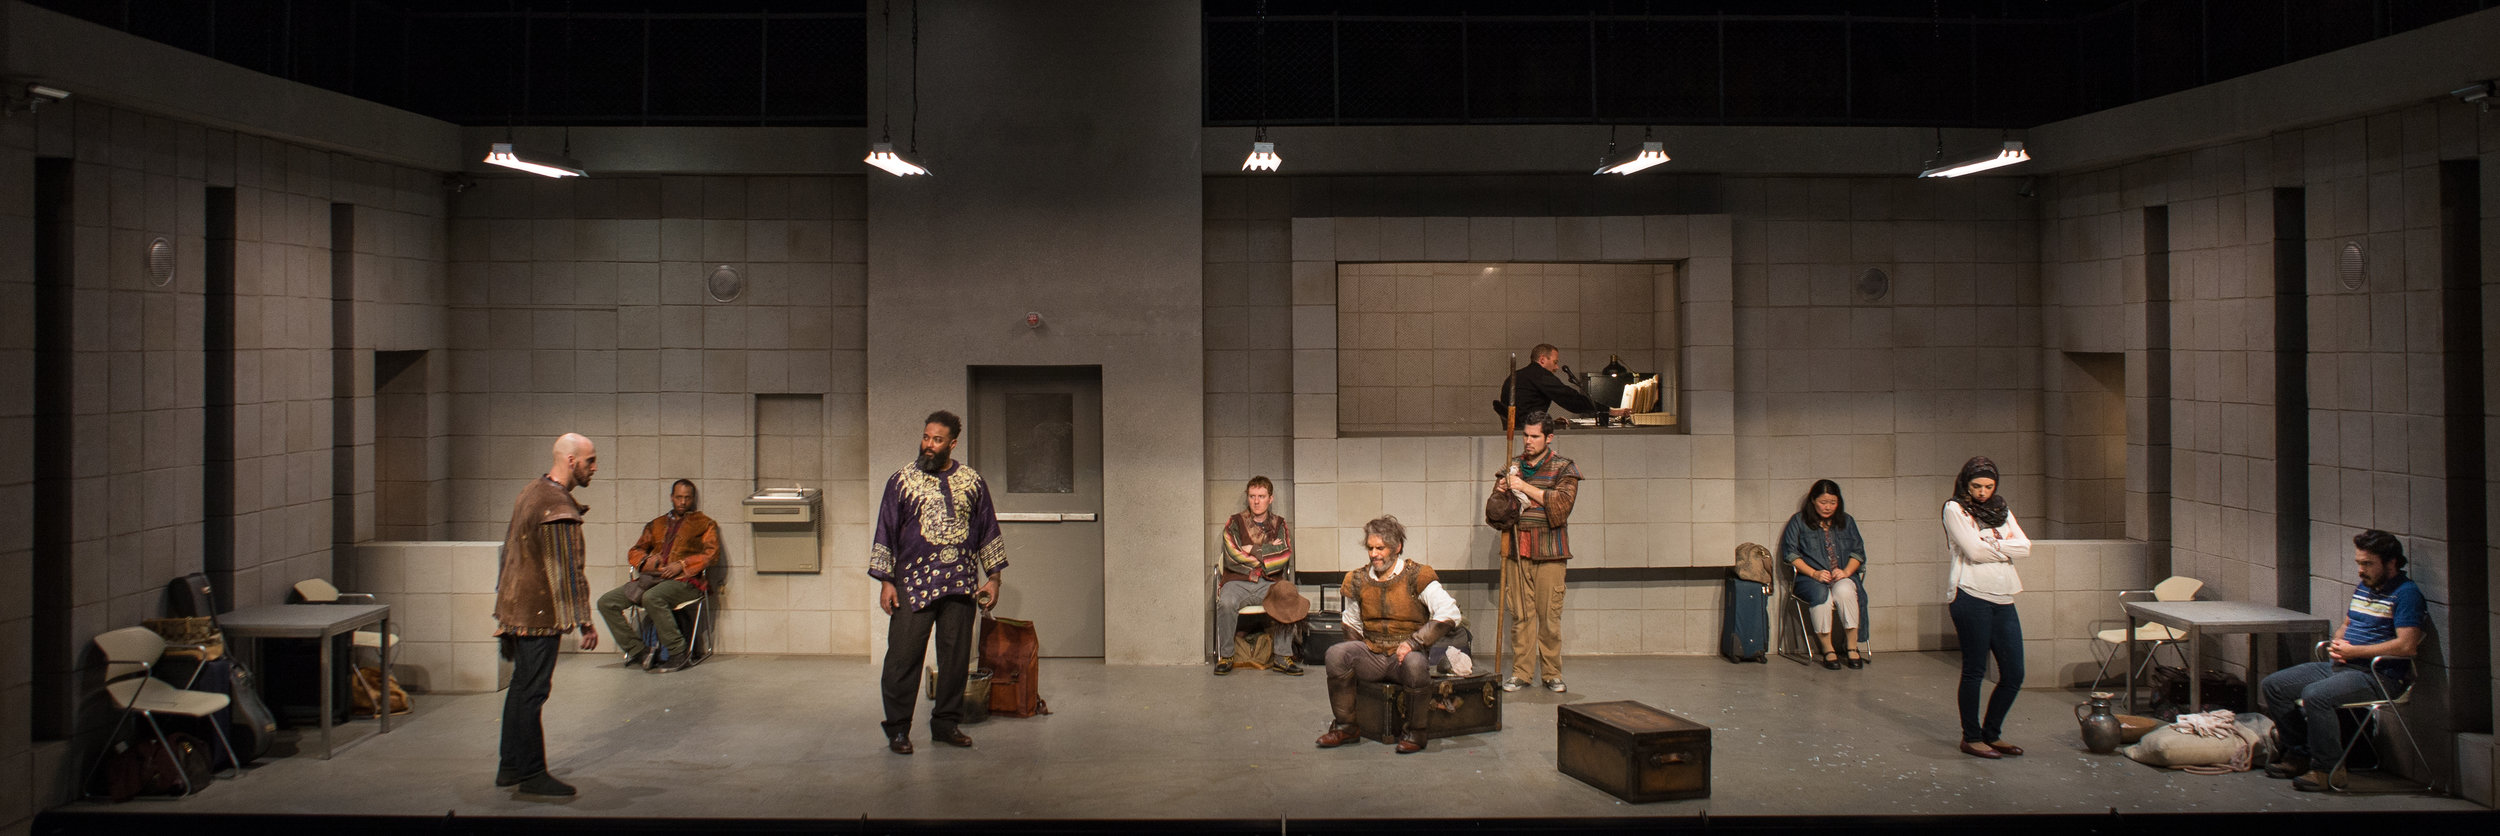 The cast of Man of La Mancha, Scenic Design by Michael Hoover, Photo by Allen Weeks